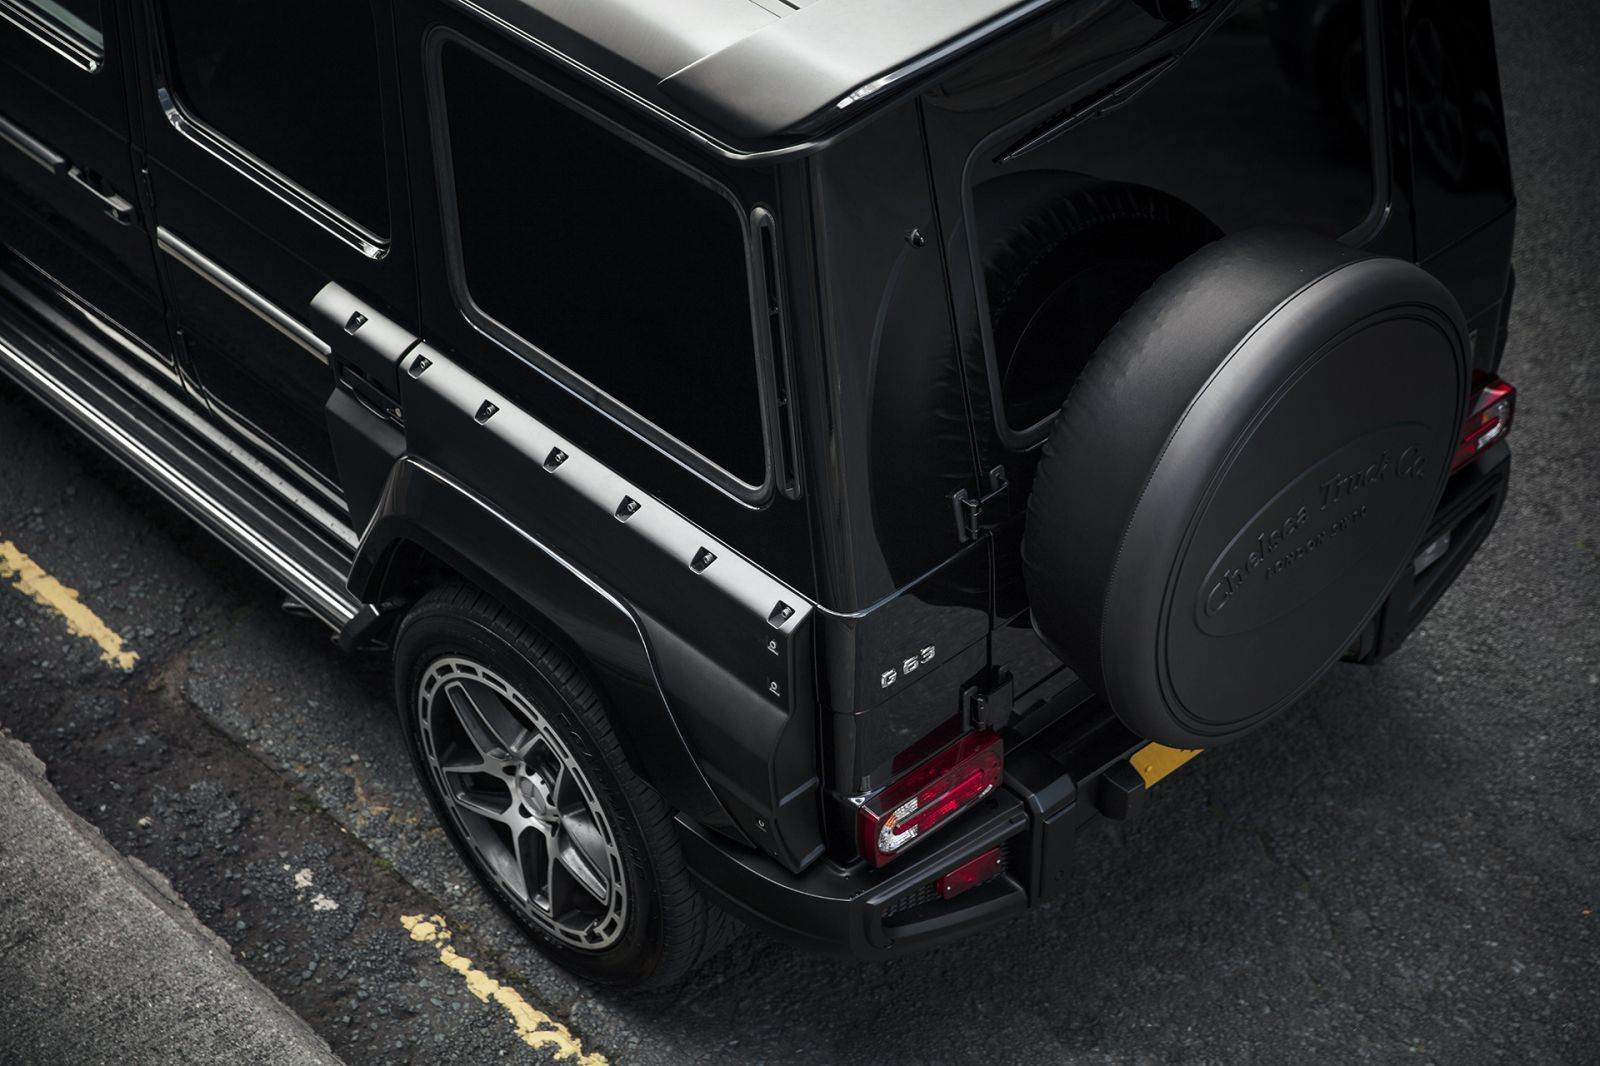 Mercedes G-Wagon (1990-2018) Wide Wing Exterior Body Styling Pack Image 5216